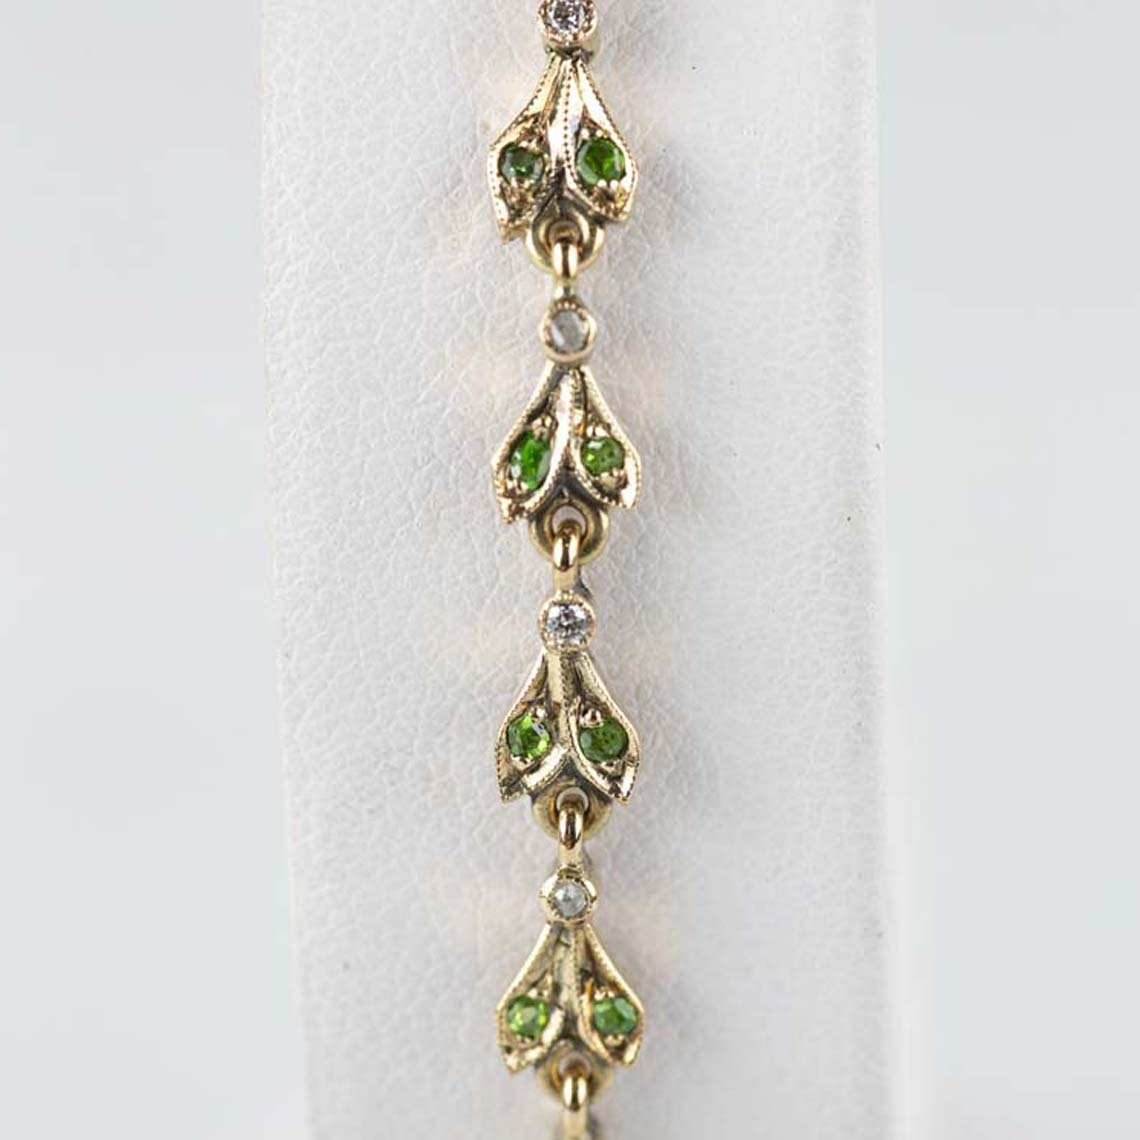 Demantoid garnet bracelet